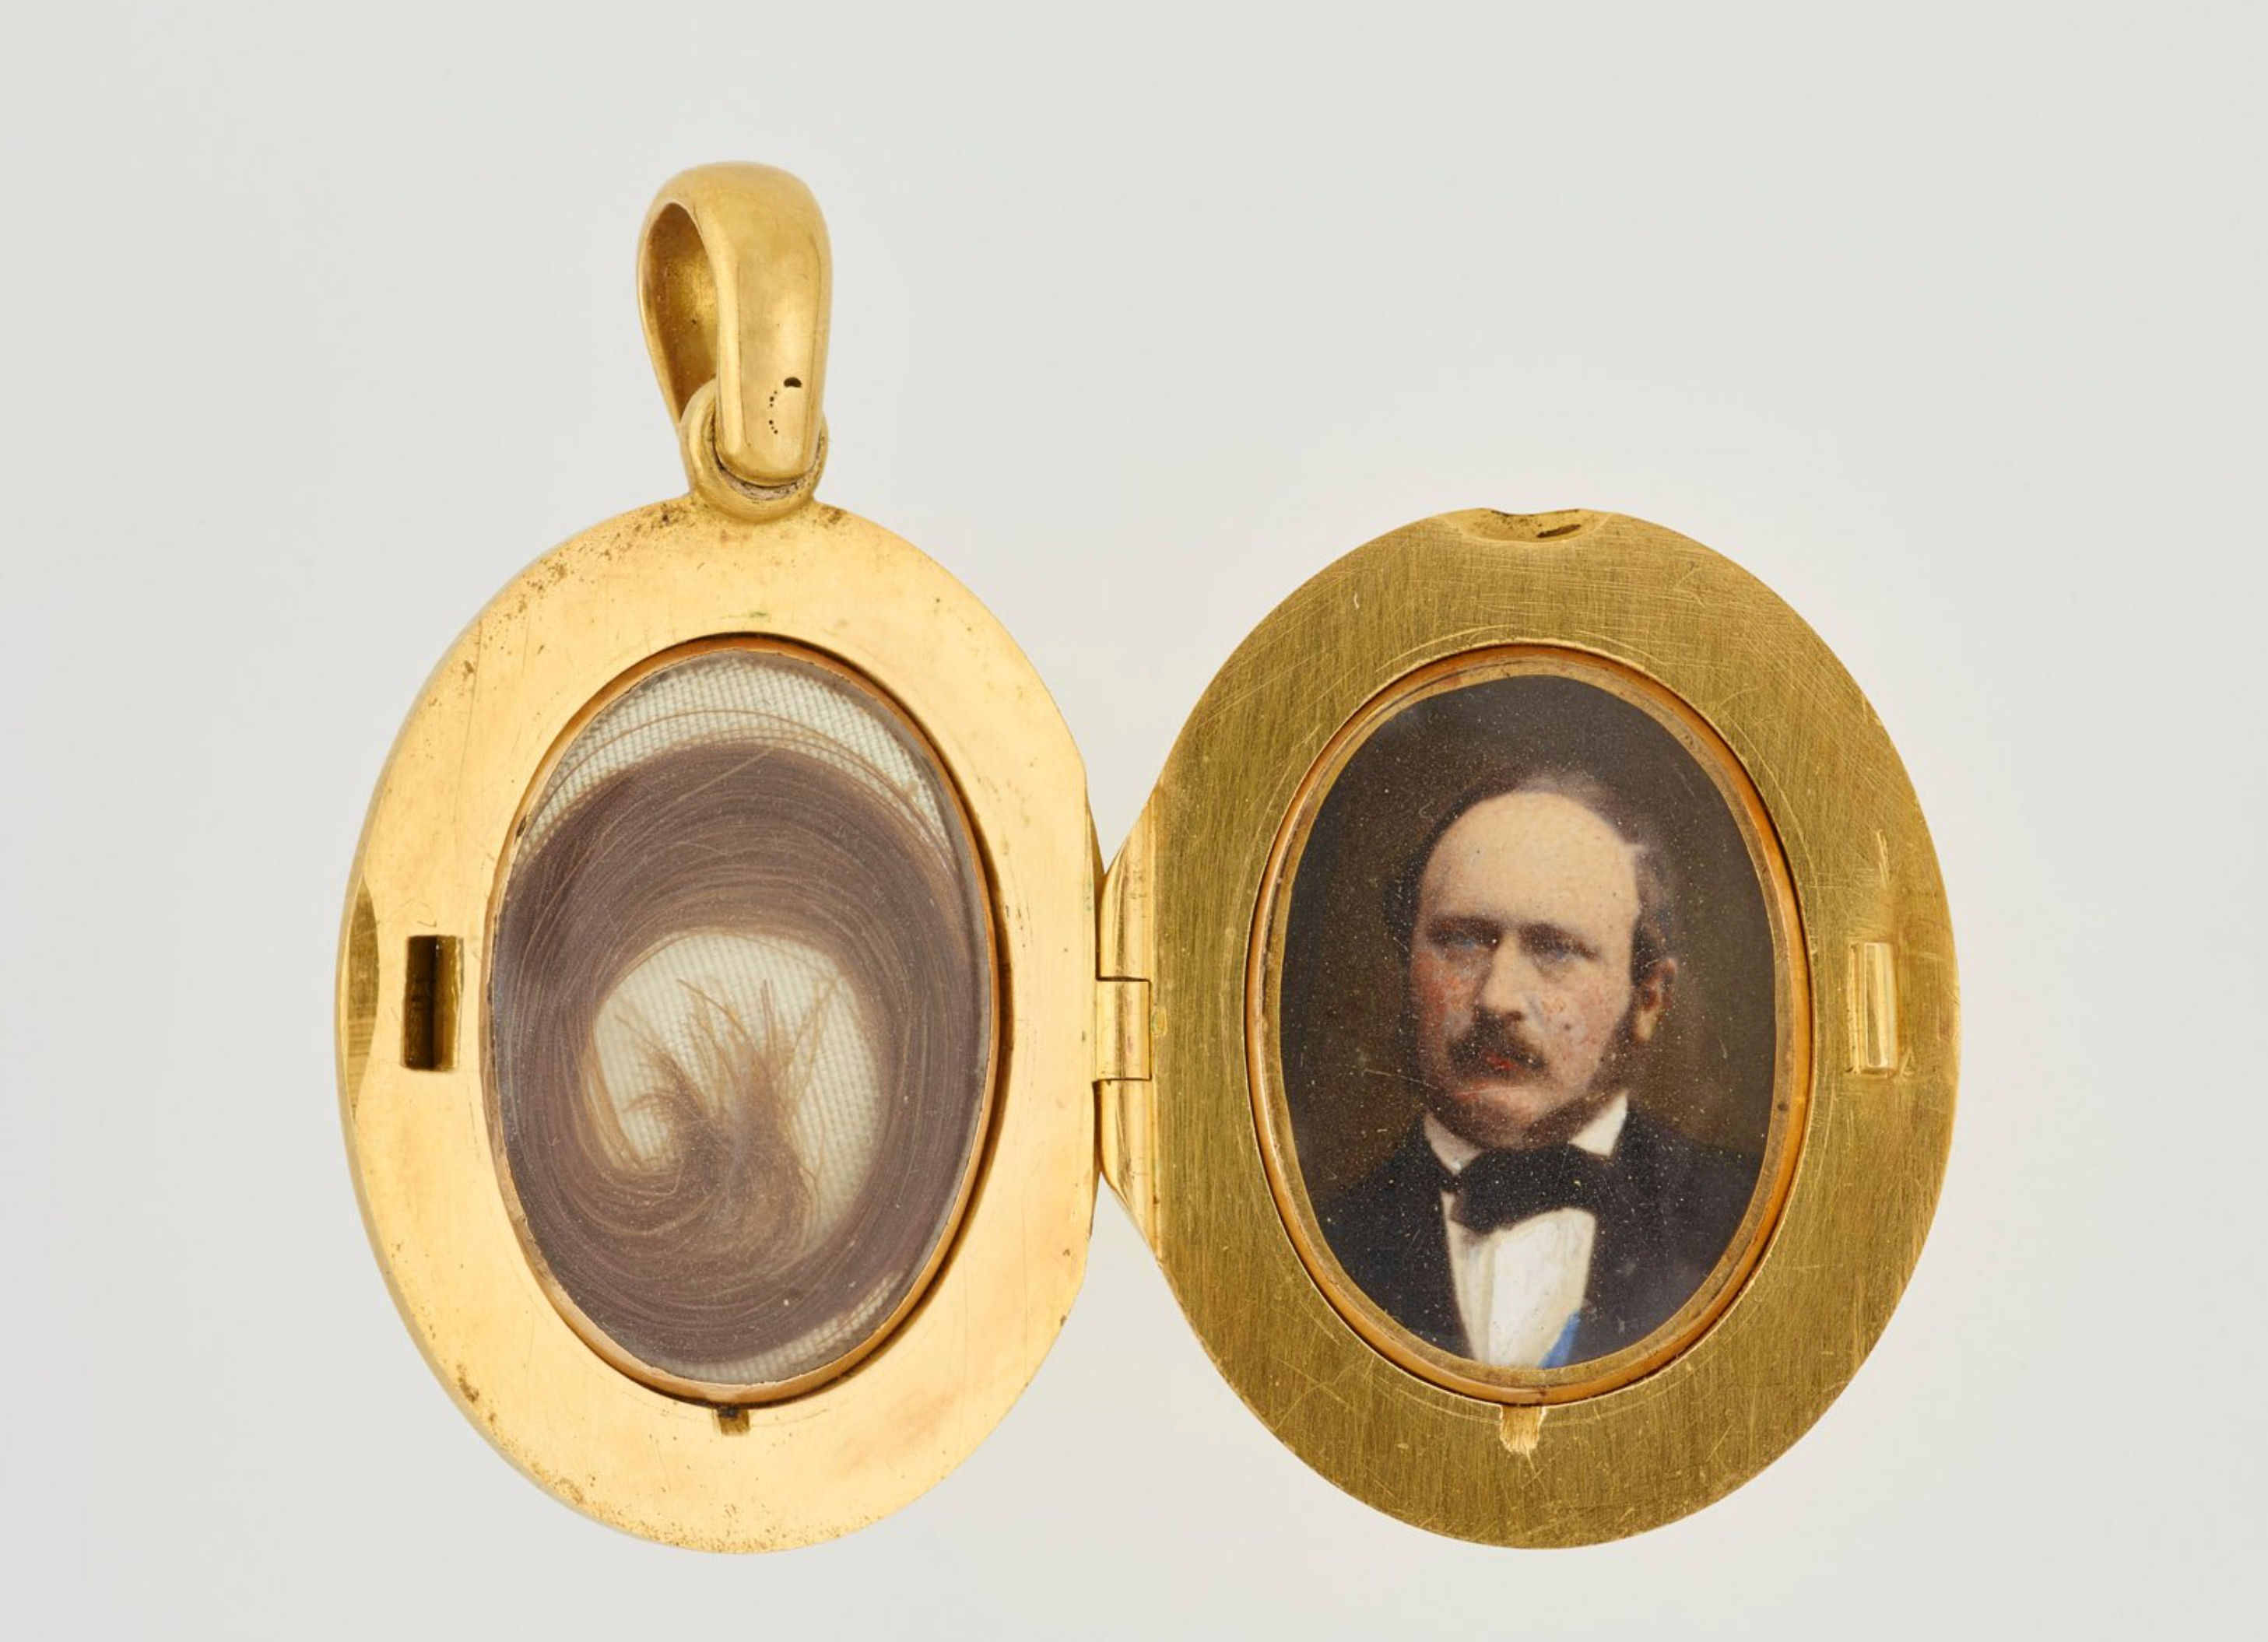 The locket opens to reveal hair on one side and photograph of Prince Albert on the other, both under glass, in the Royal Collection Trust